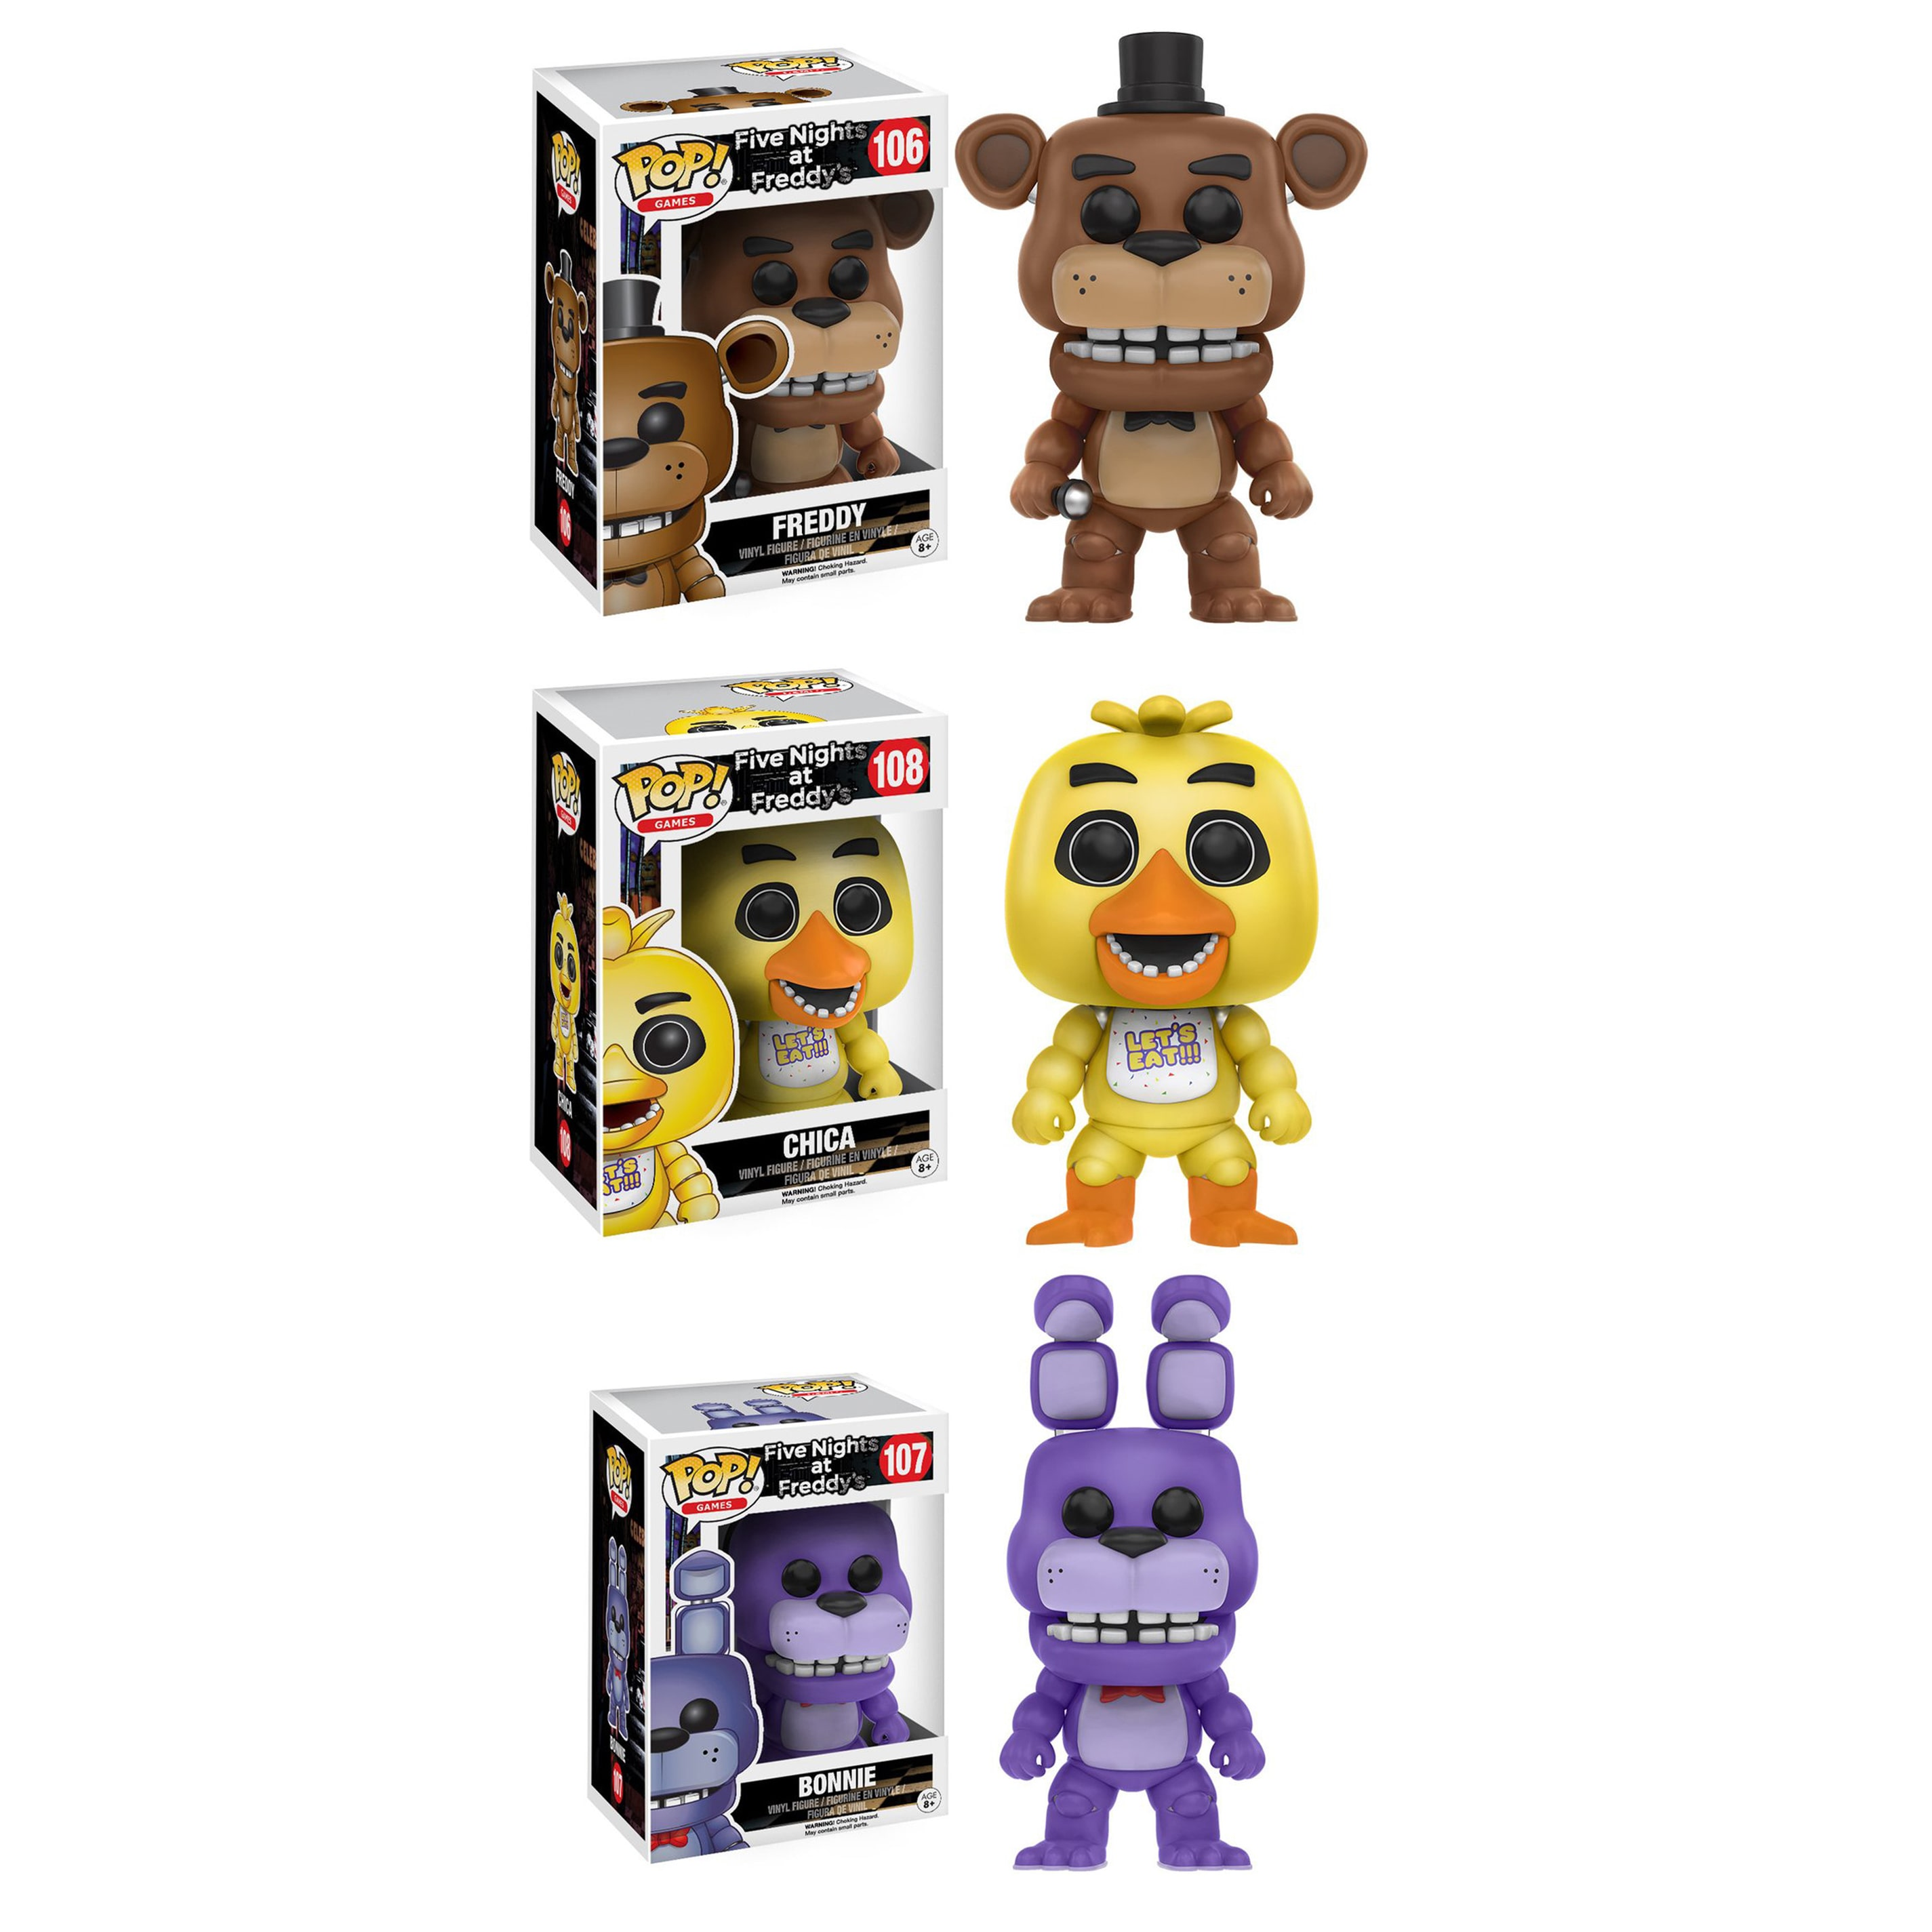 Funko Pop Five Nights At Freddys Collectors Set With Freddy Bott Fnaf Bonnie And Chica